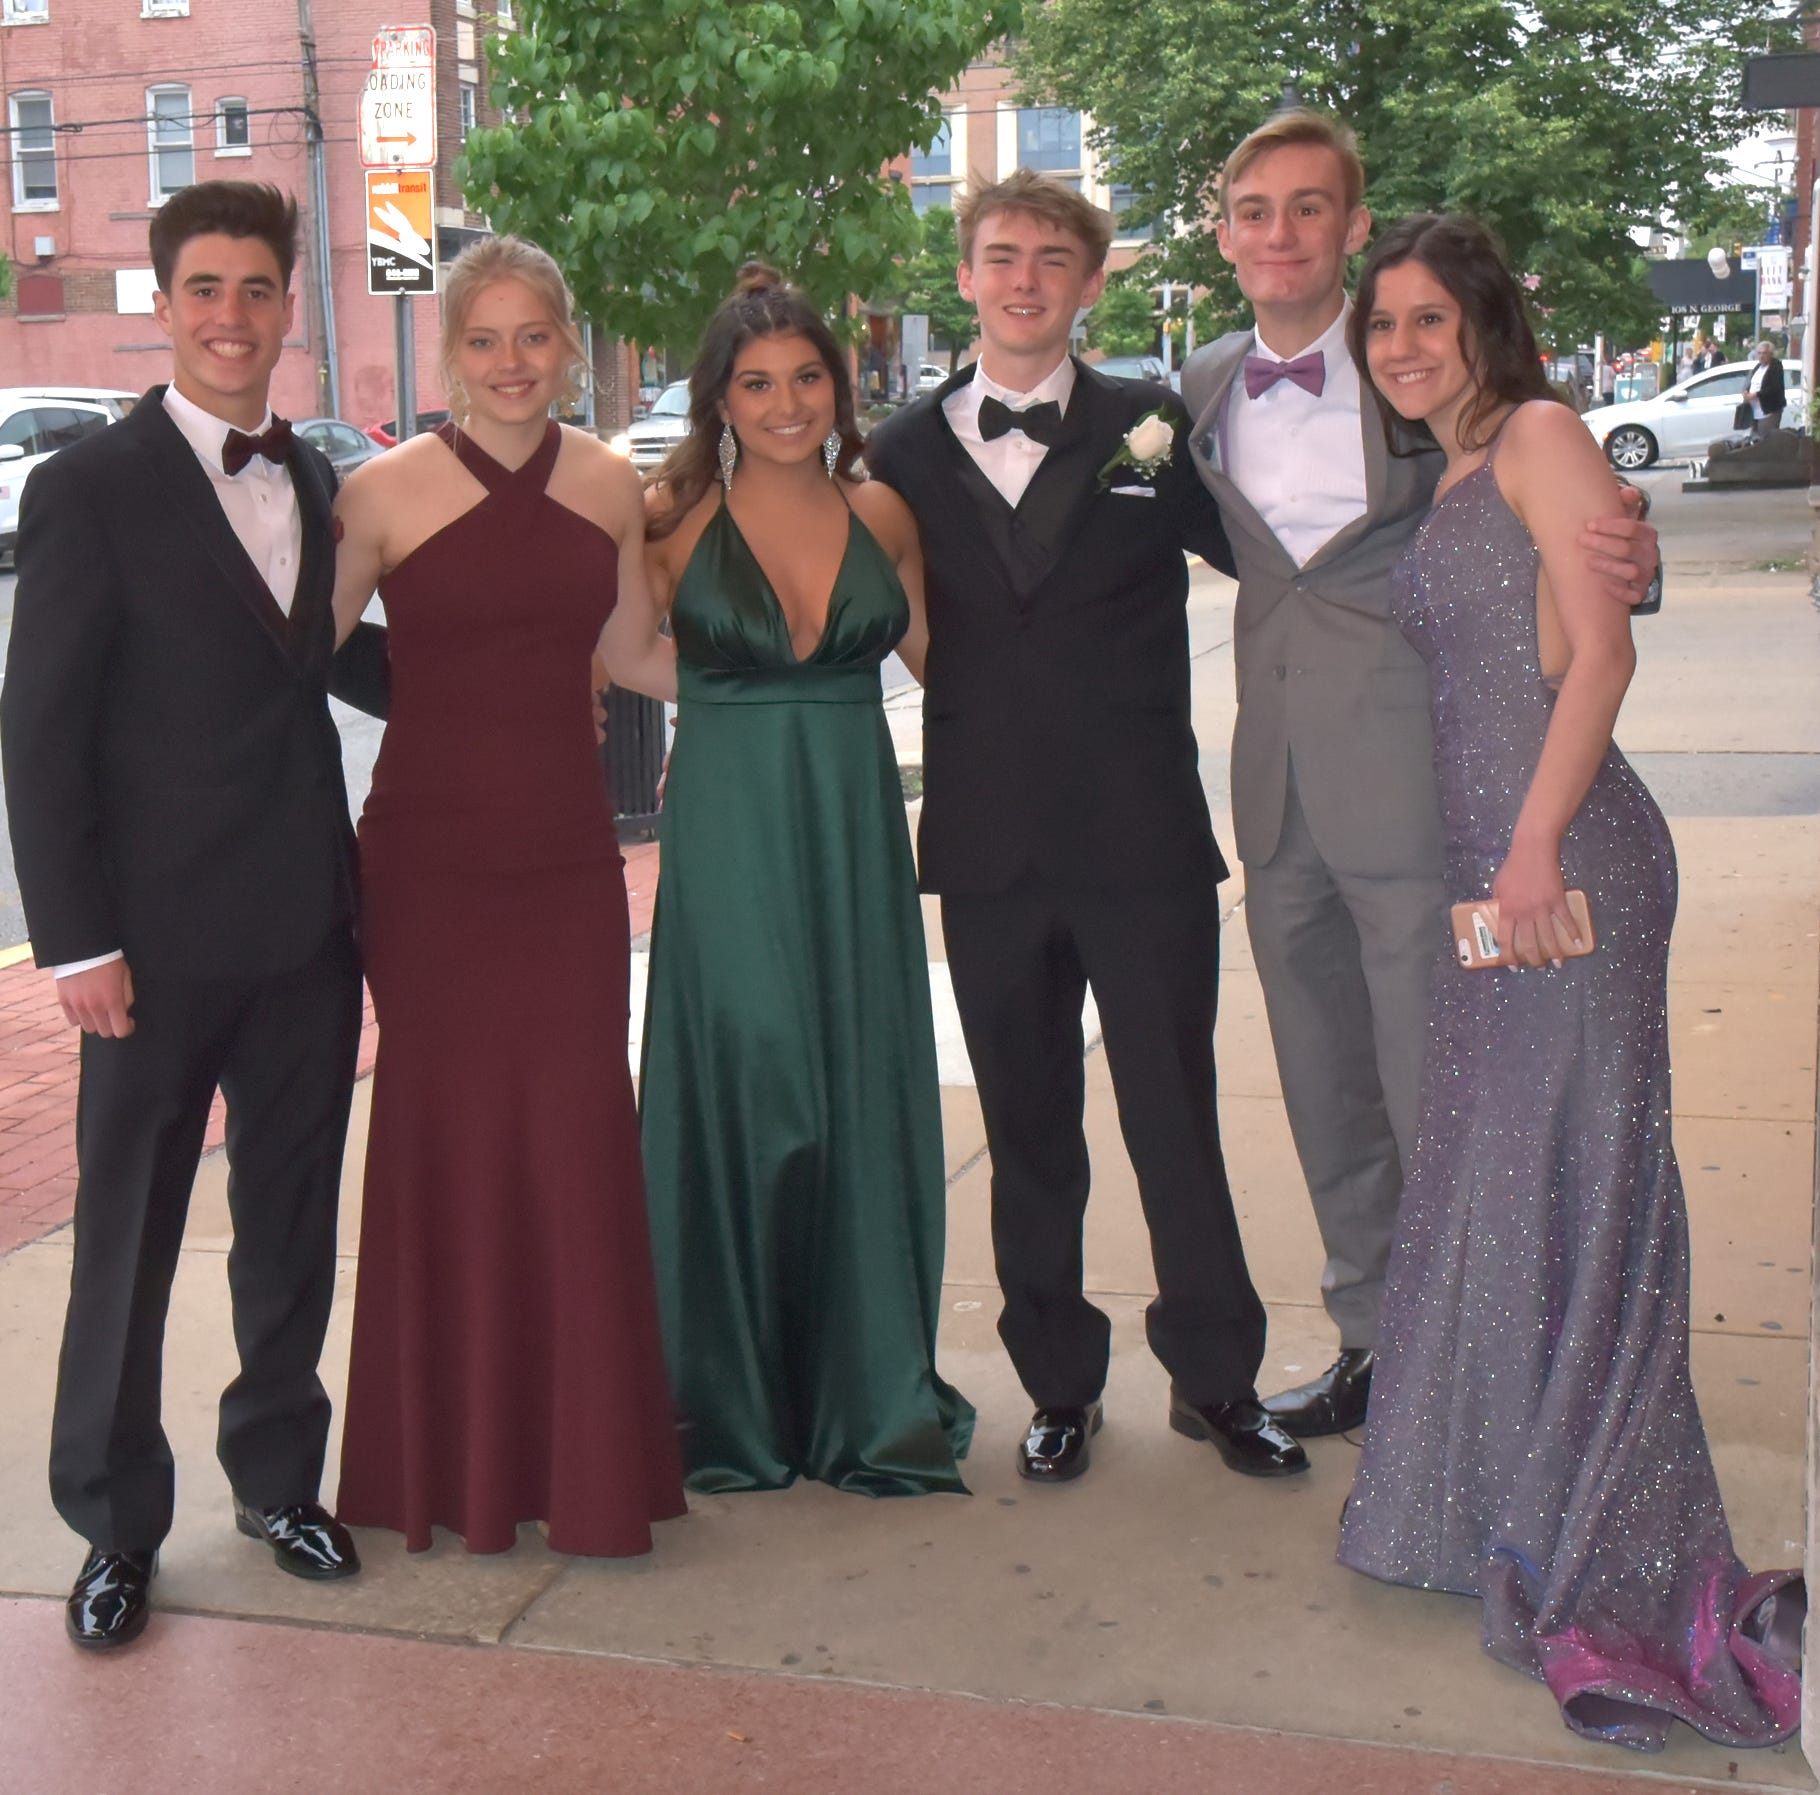 PHOTOS: York Suburban Trojans celebrate 2019 prom at Valencia